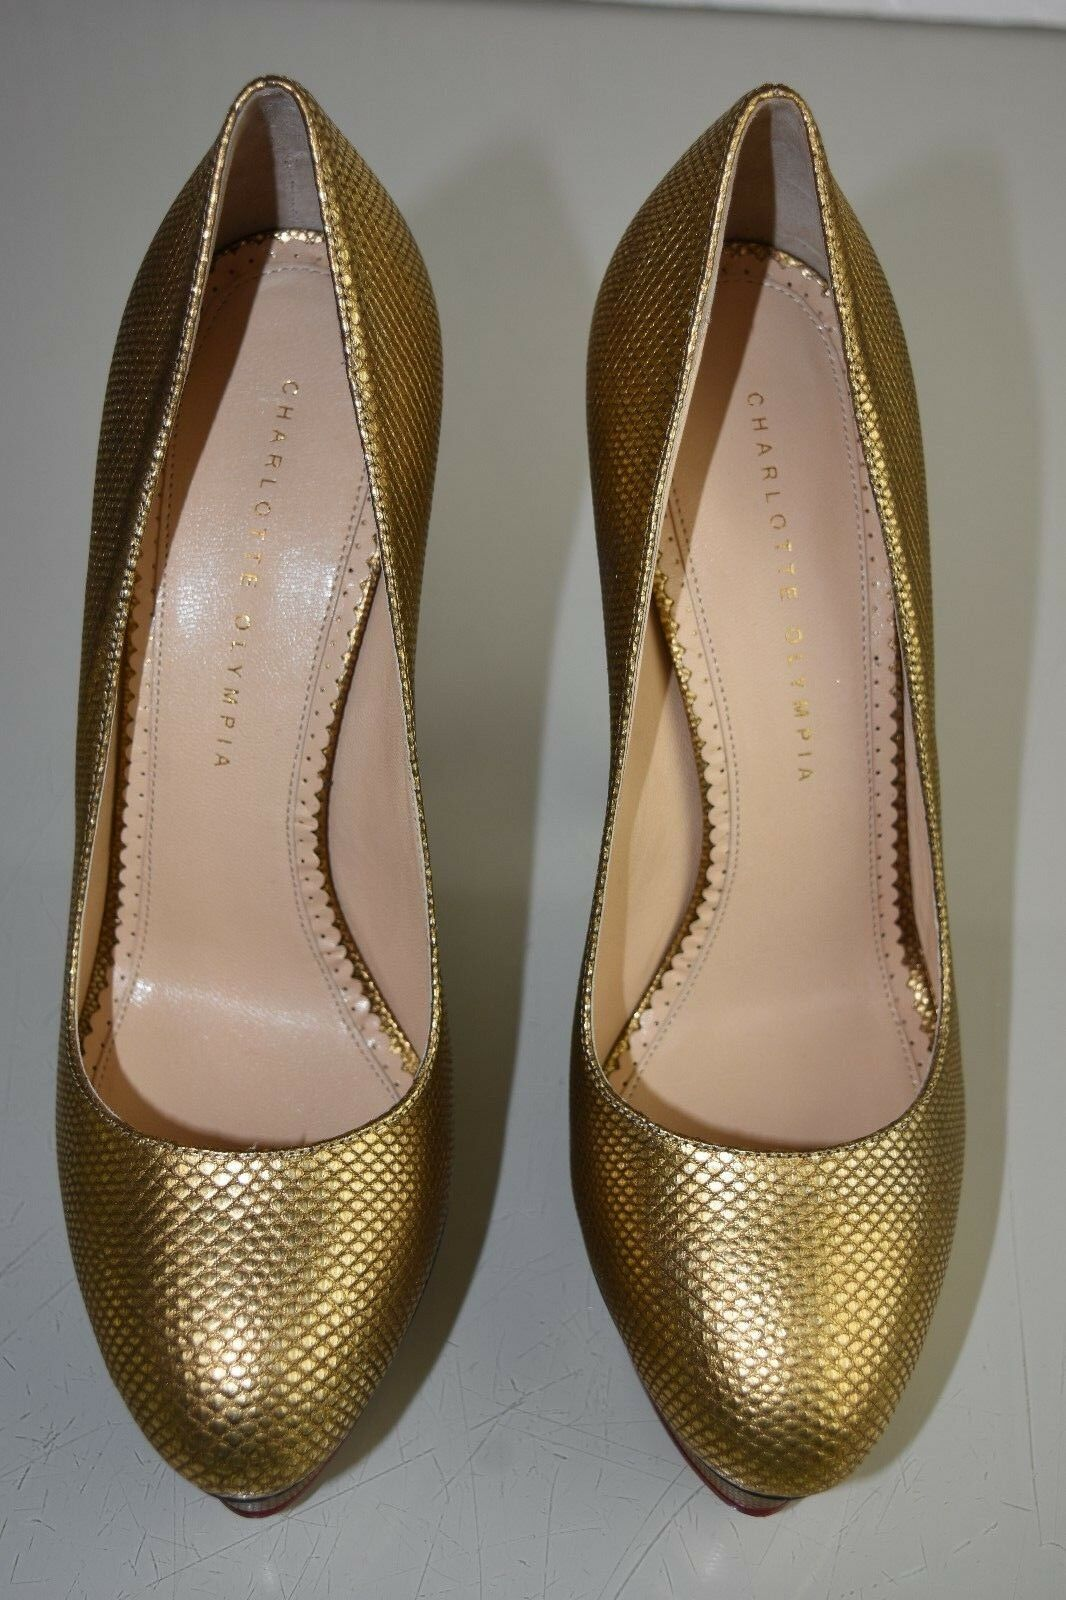 Neuf Charlotte Olympia Karung Dolly Exotique Karung Olympia Plateformes or Chaussures Plates 41 a11815